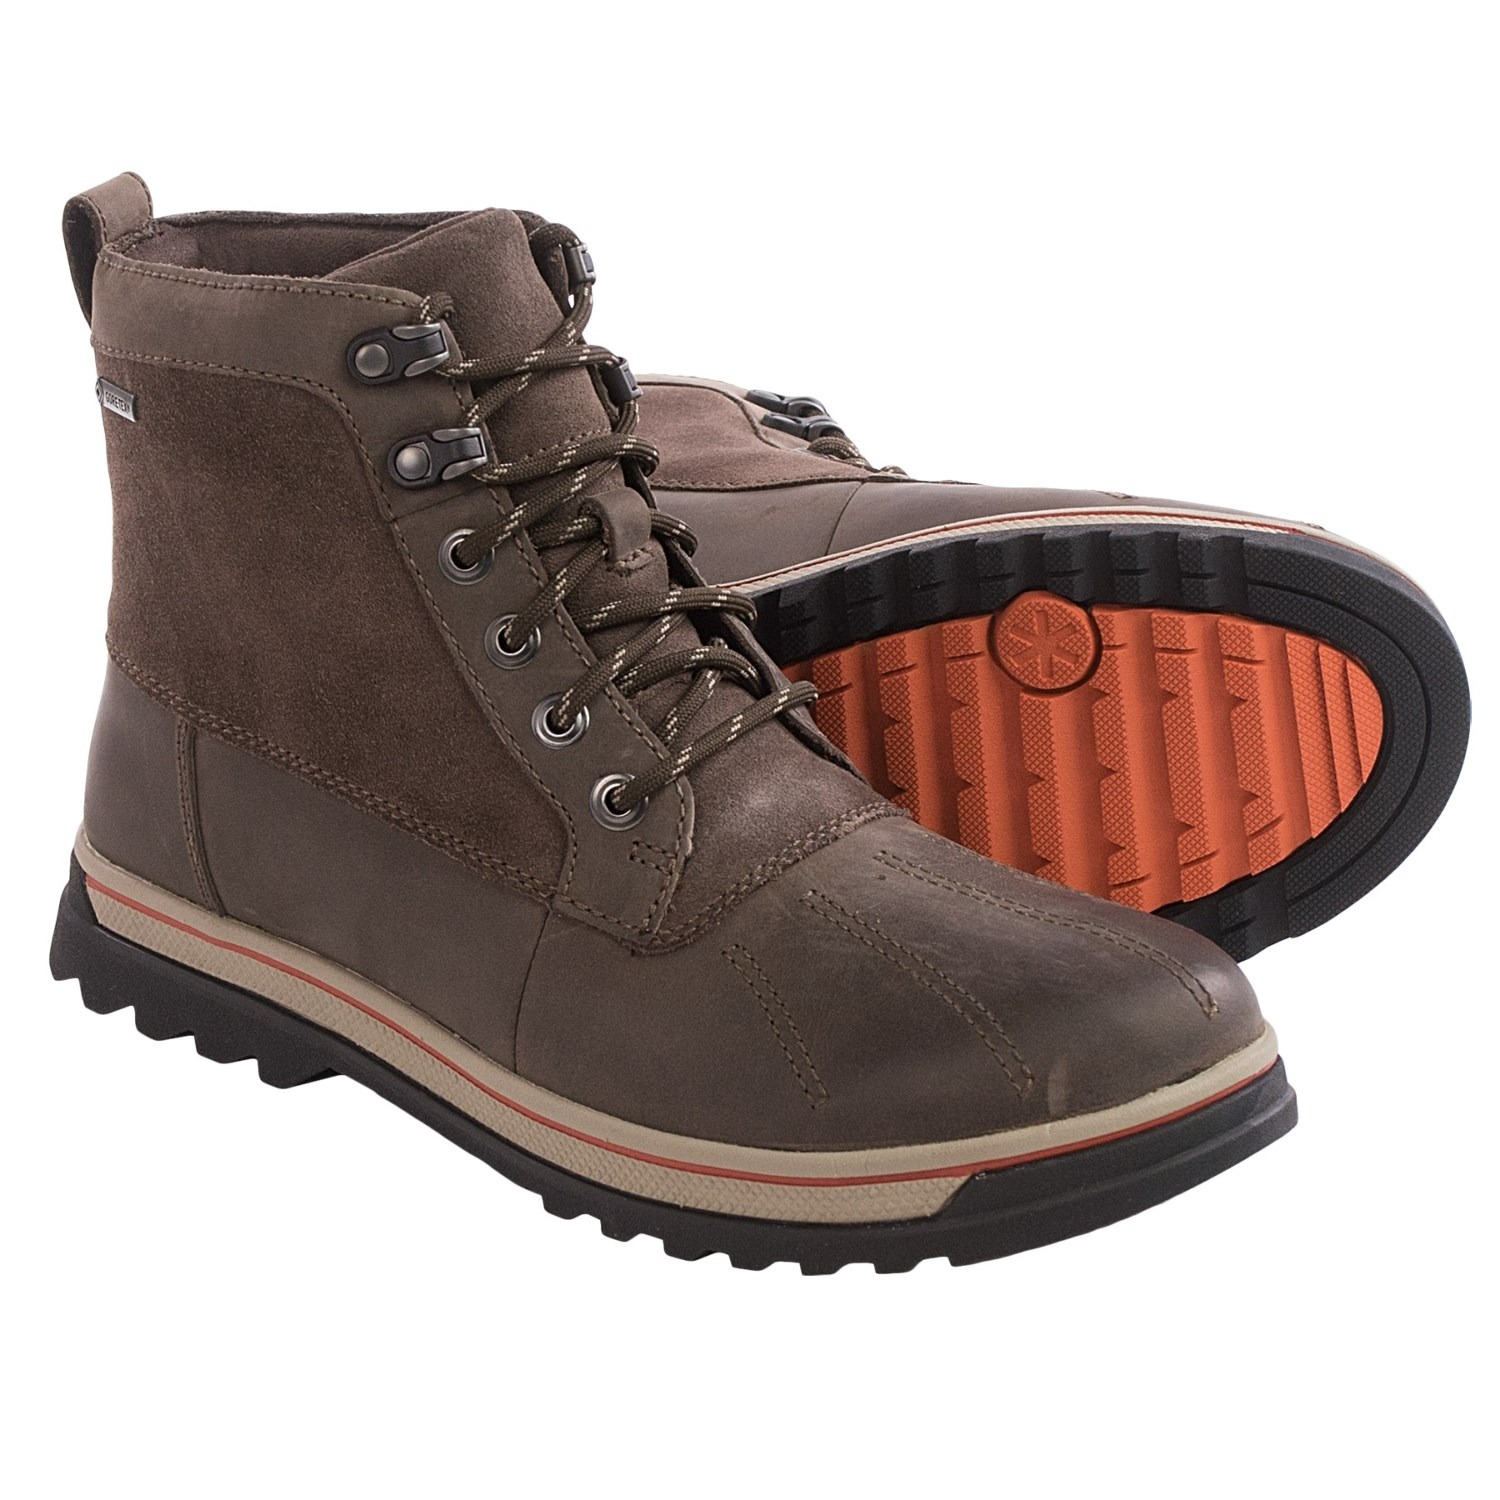 Waterproof Outdoor Boots For Women Waterproof Best Home